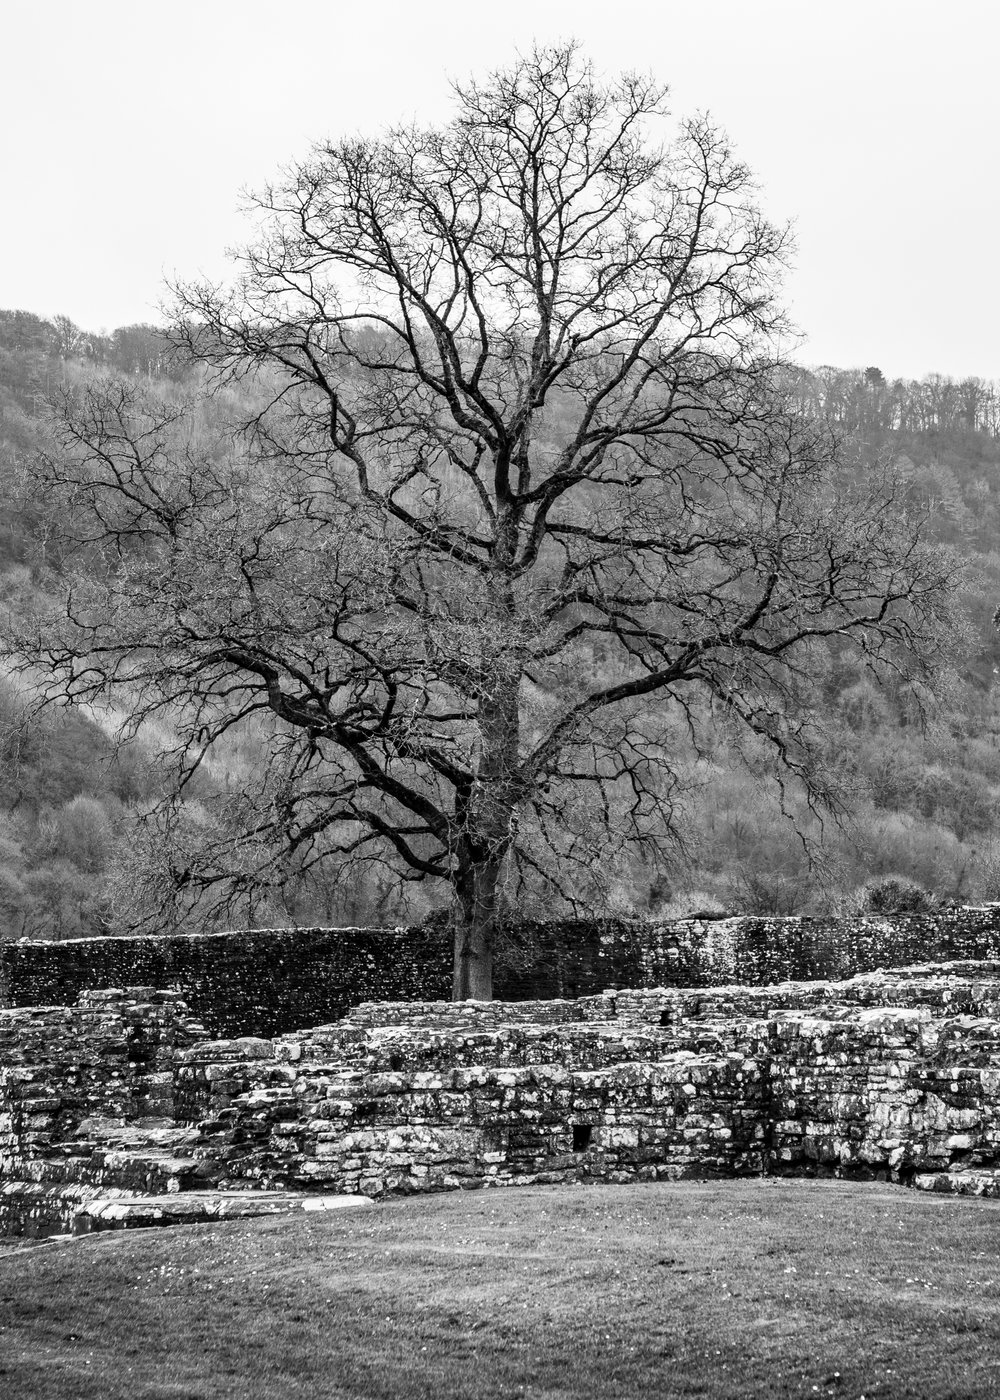 As you probably noticed, this tree captured my imagination a number of times.